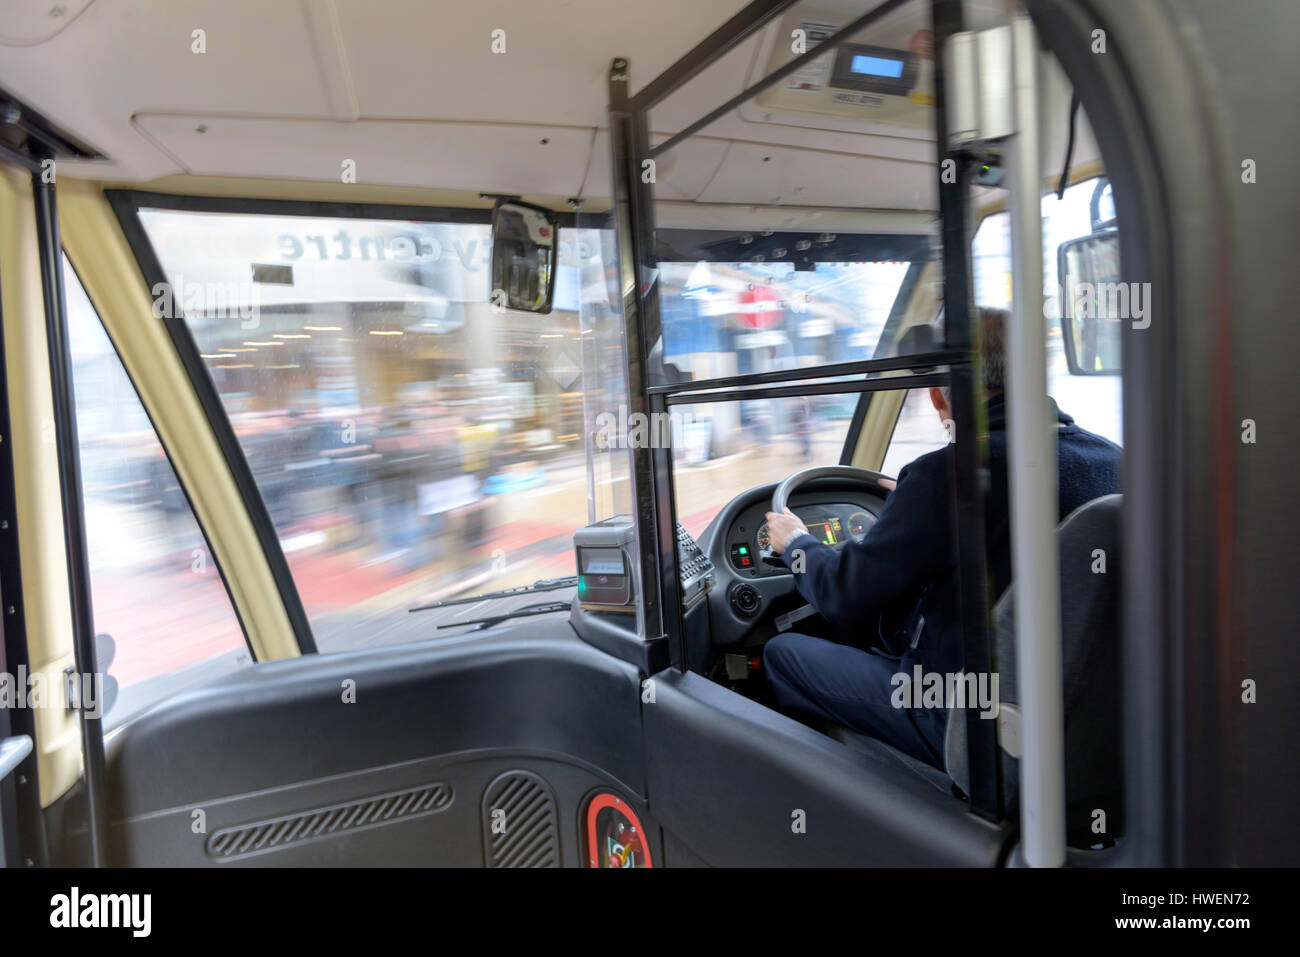 Bus driver driving electric bus in traffic - Stock Image